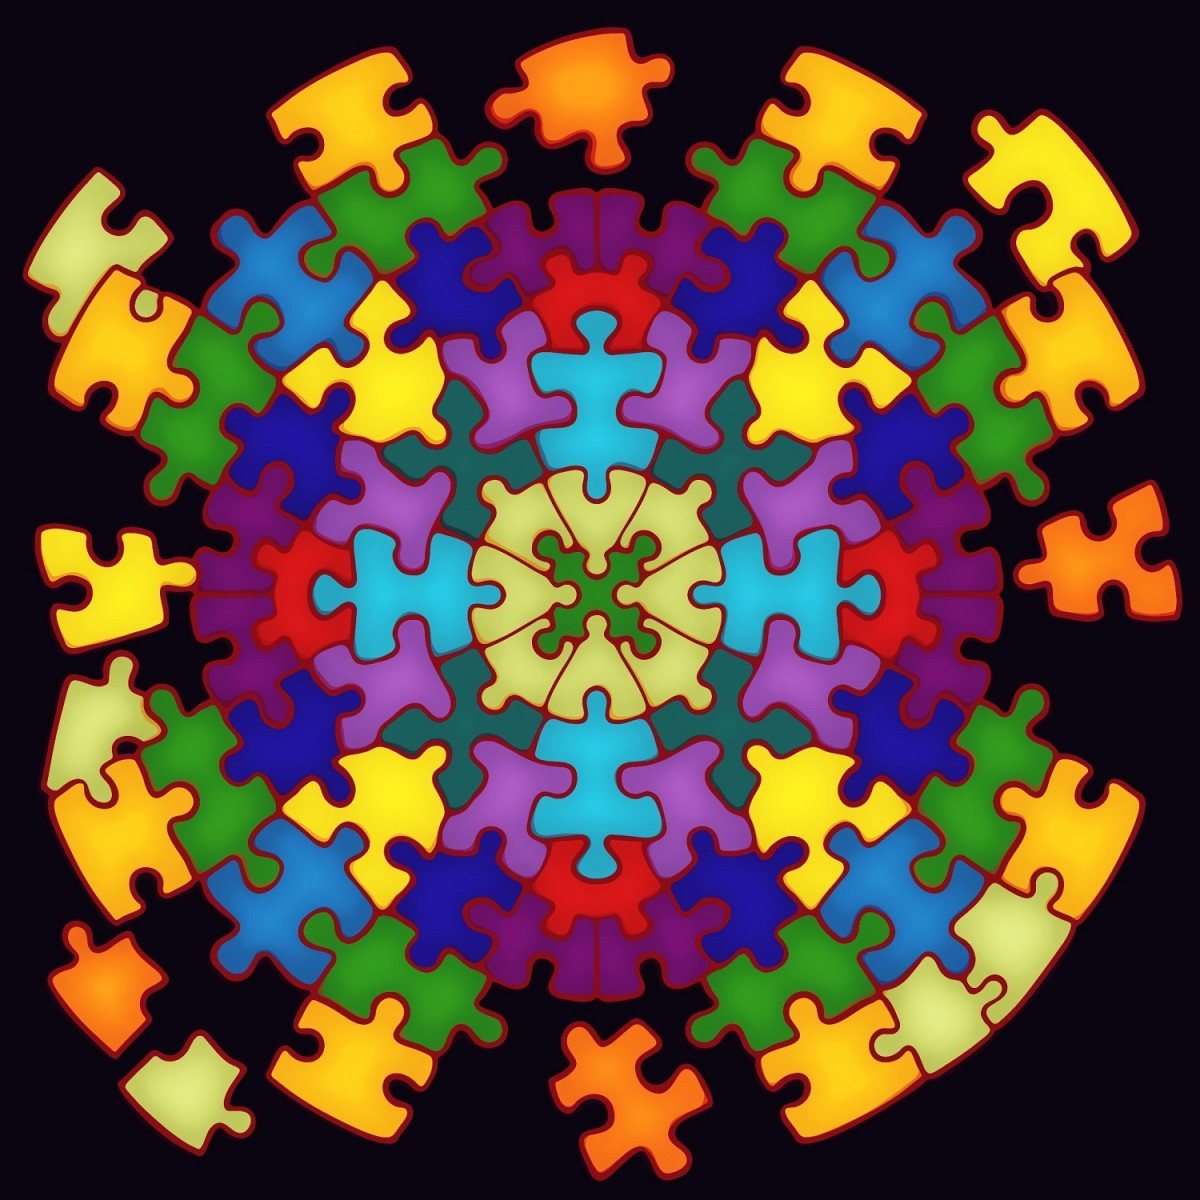 Jigsaw Puzzle Solve jigsaw puzzles online - Puzzles